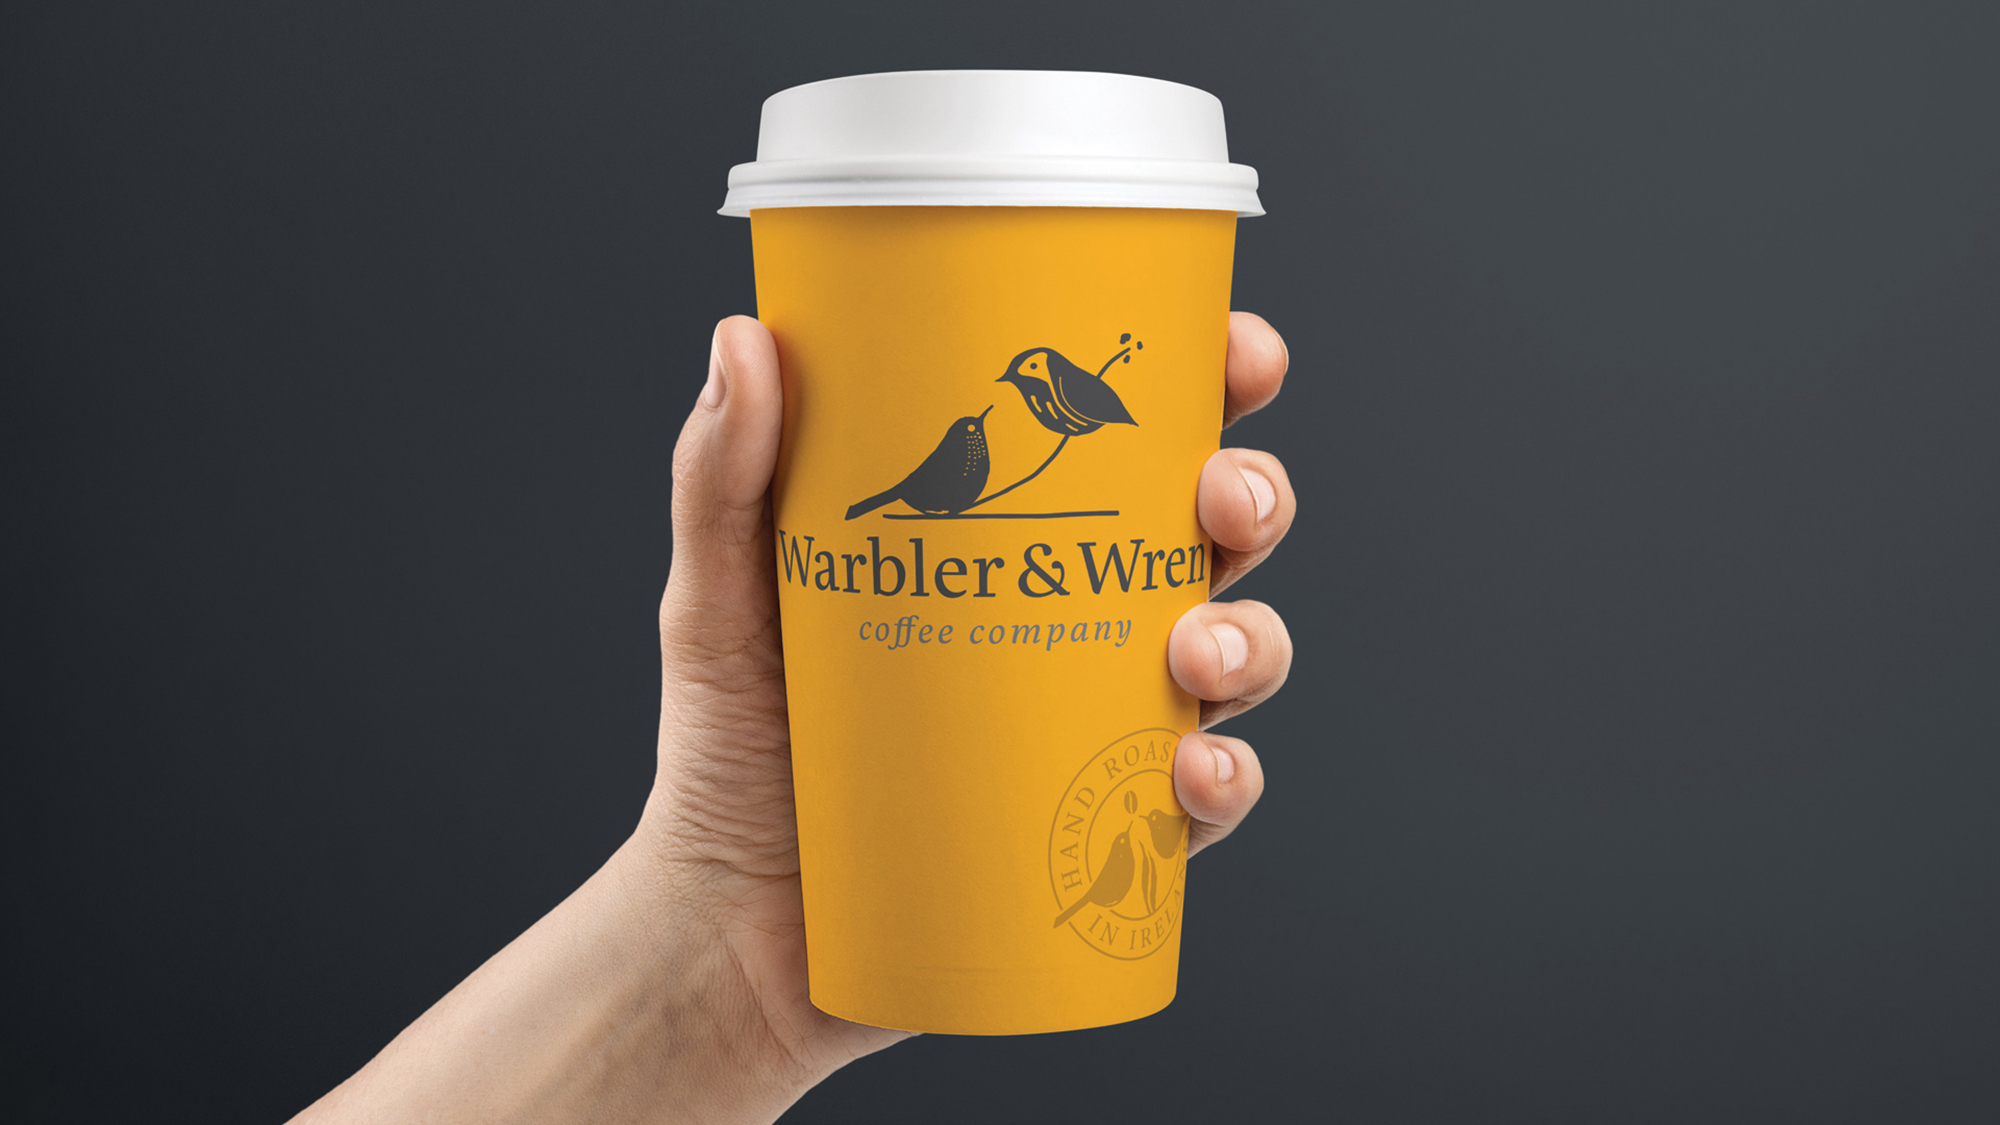 Cover image: Warbler & Wren Coffee Company